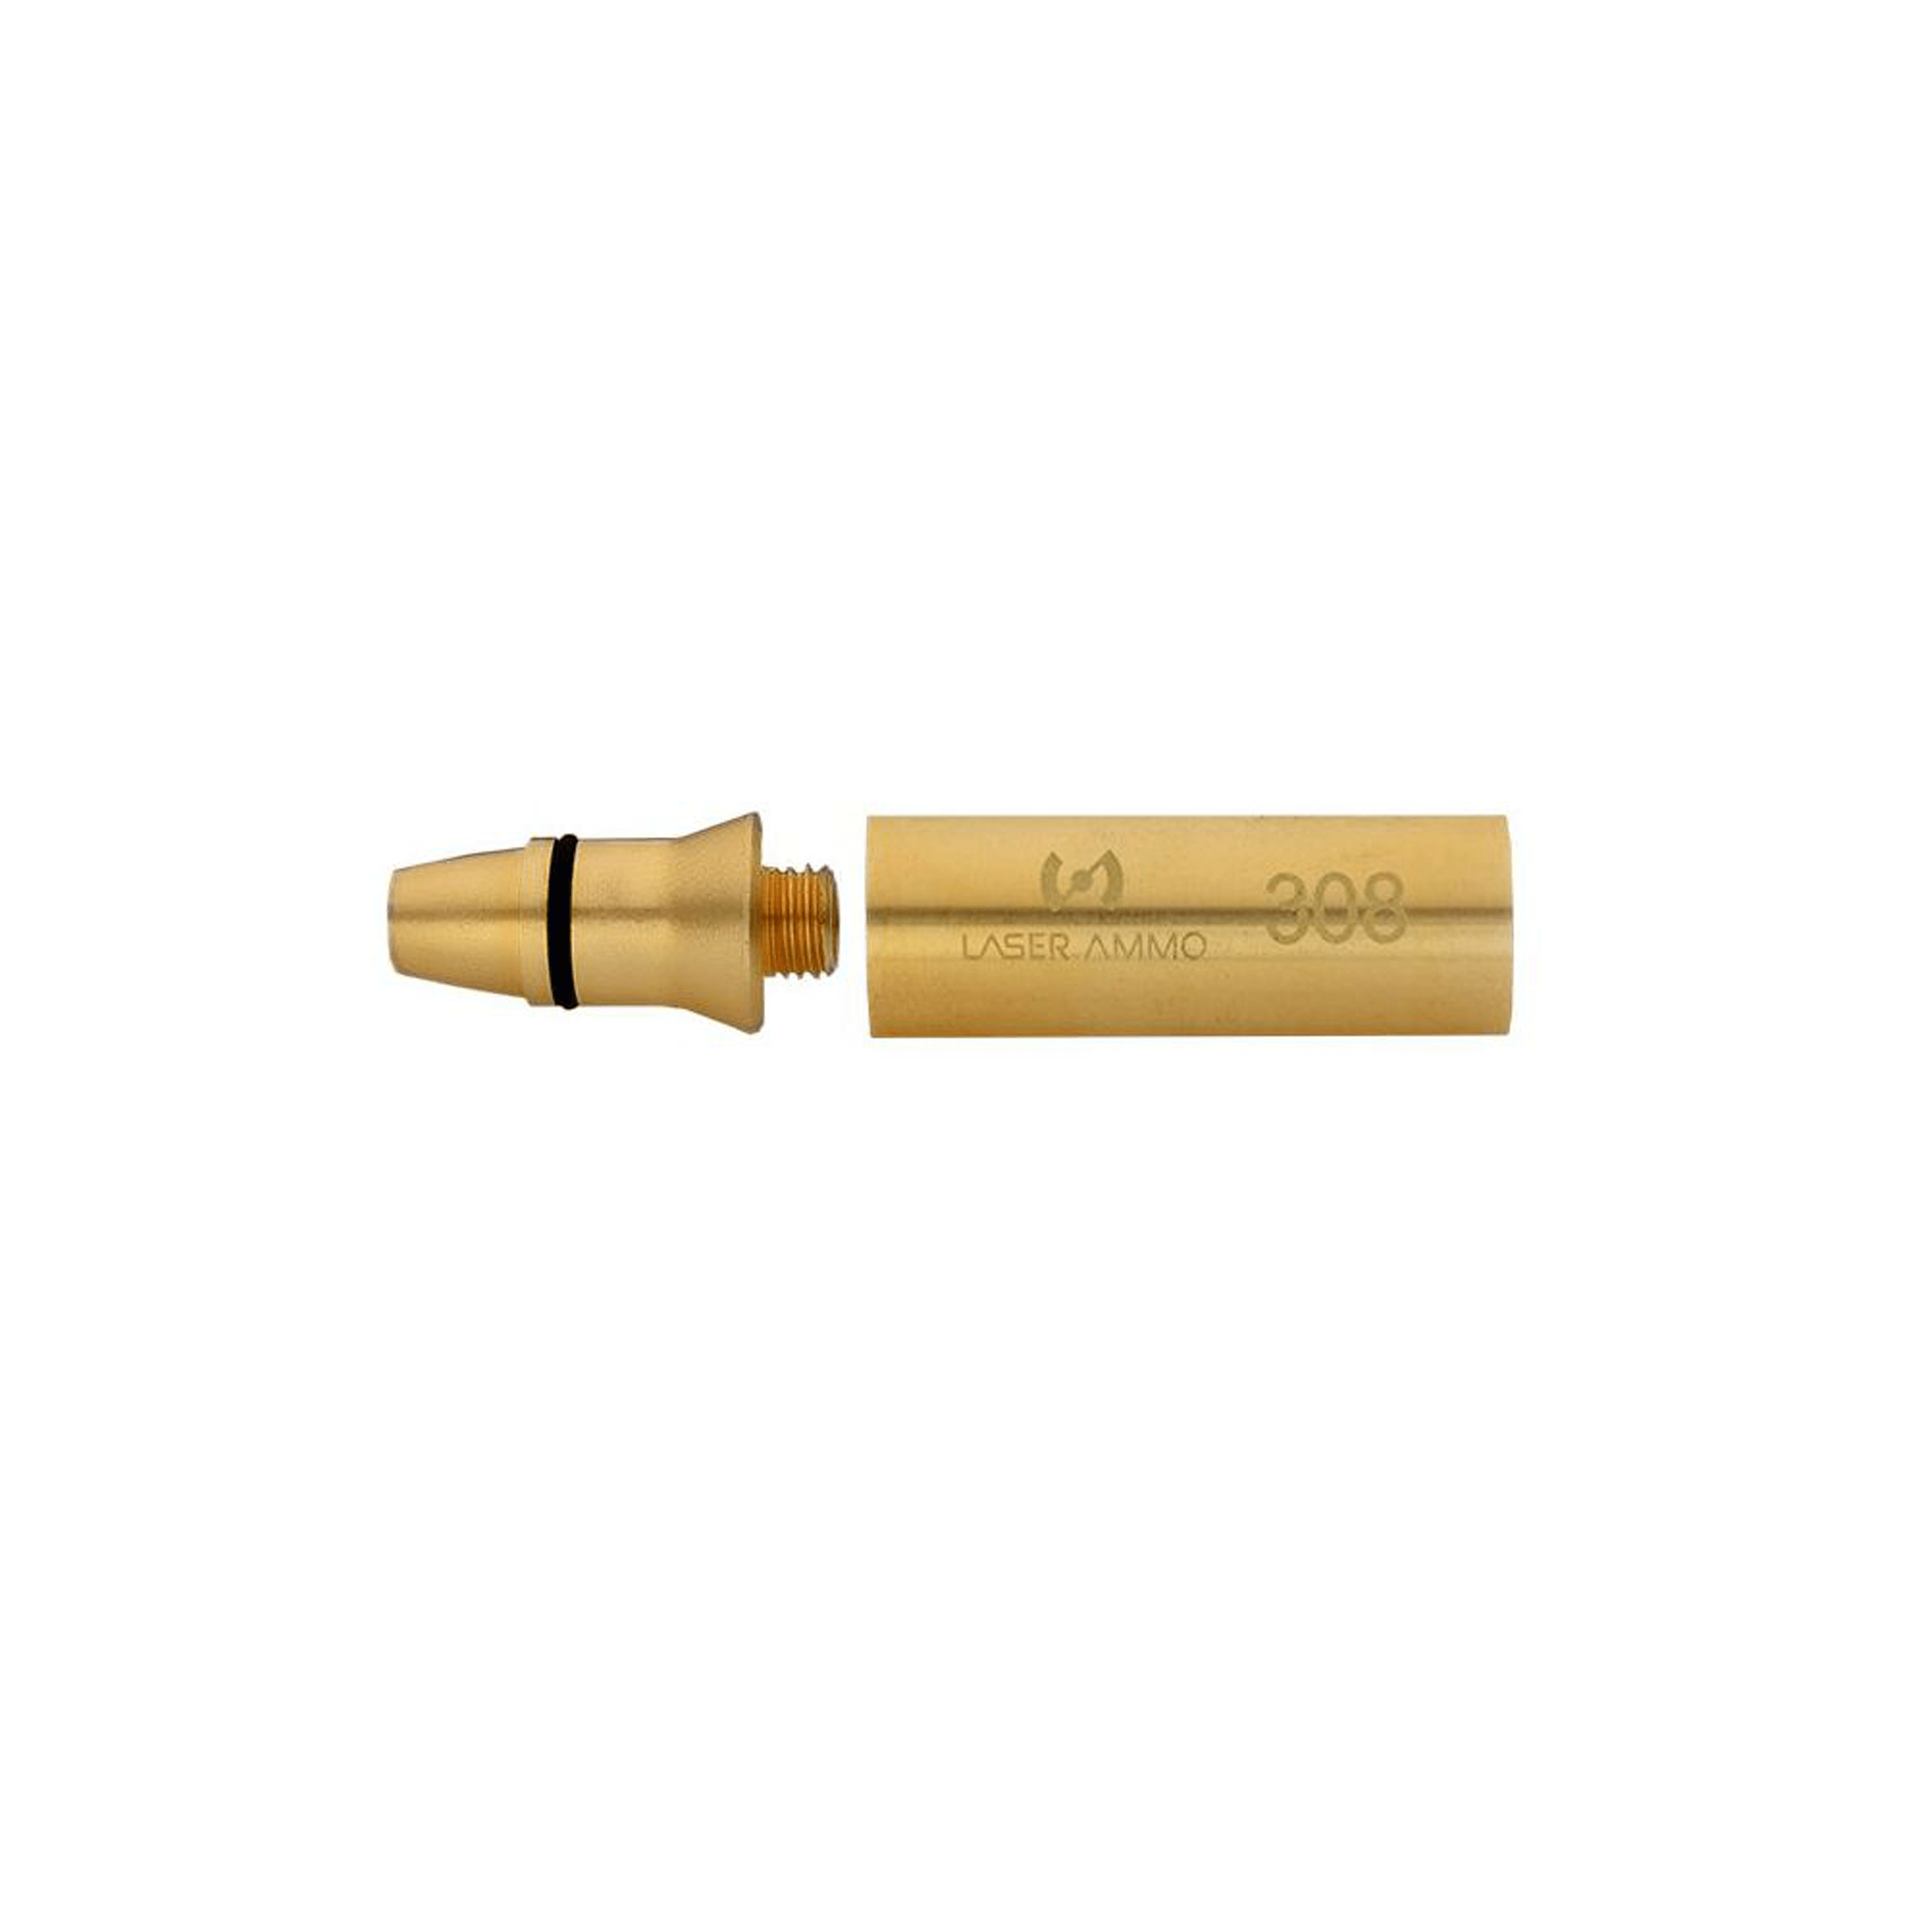 30-06 Caliber Rifle Adapter sleeve